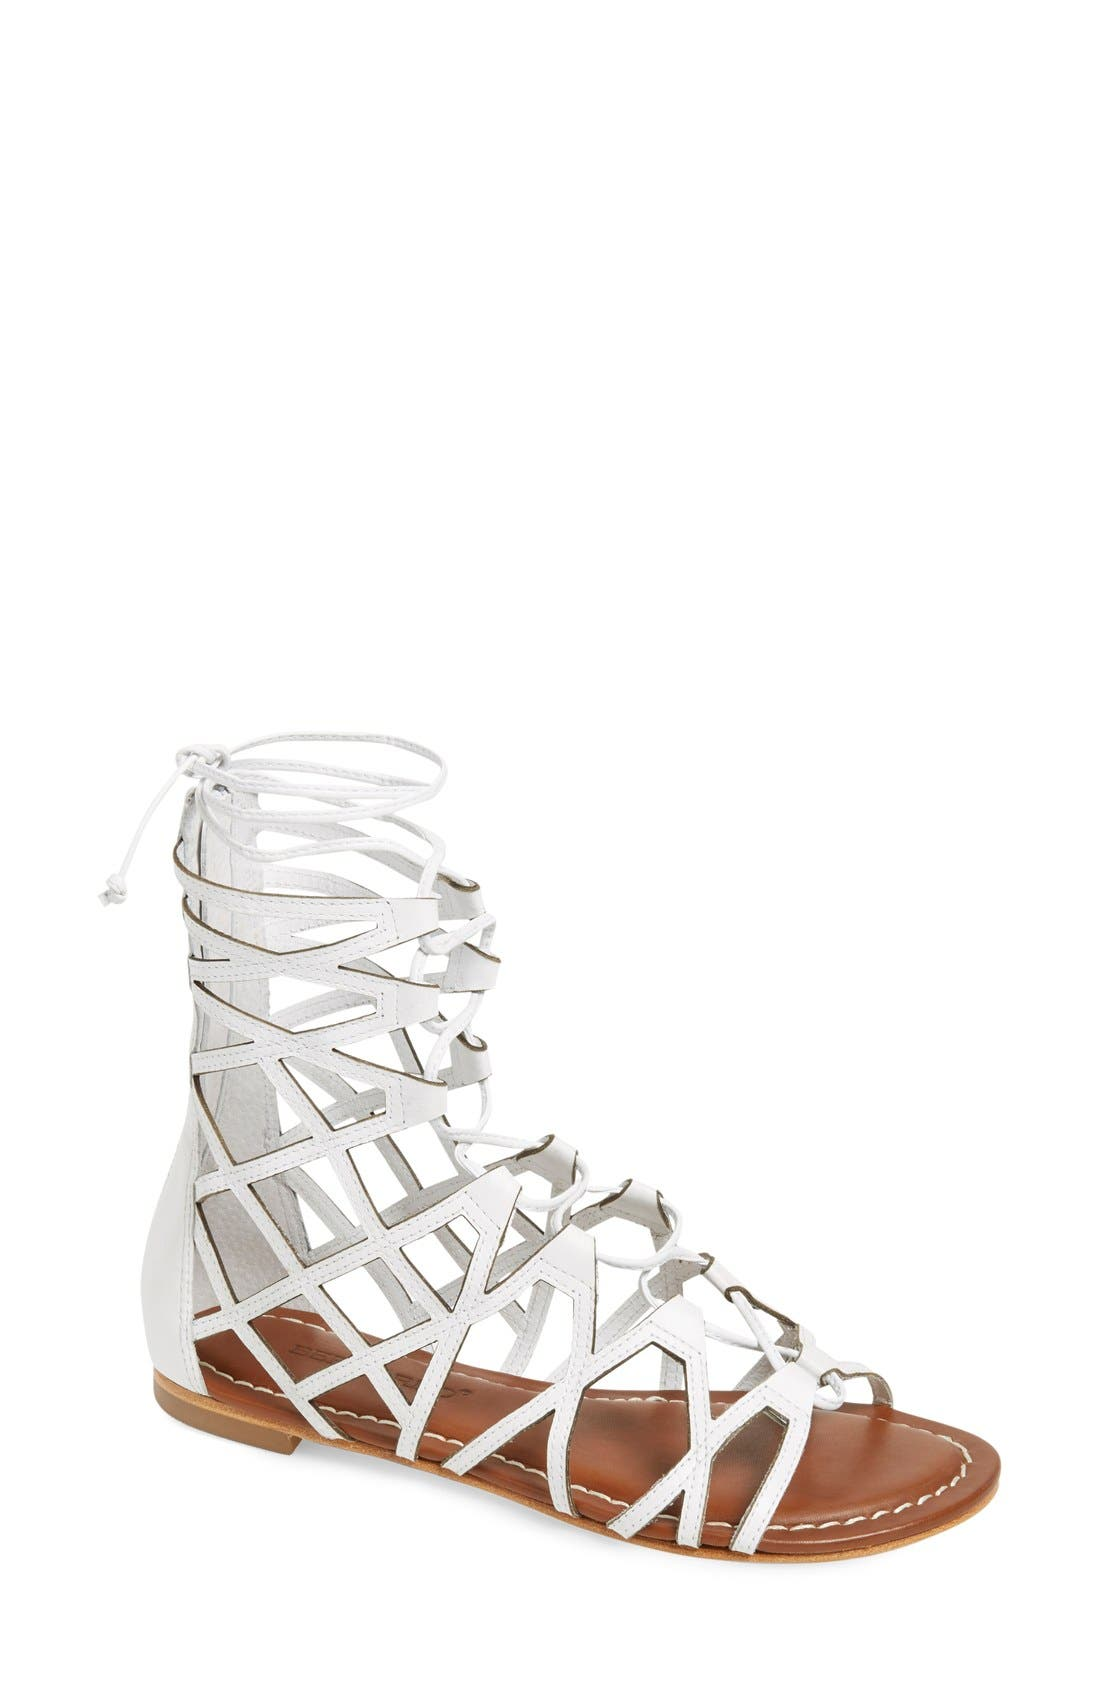 BERNARDO Willow Gladiator Sandal